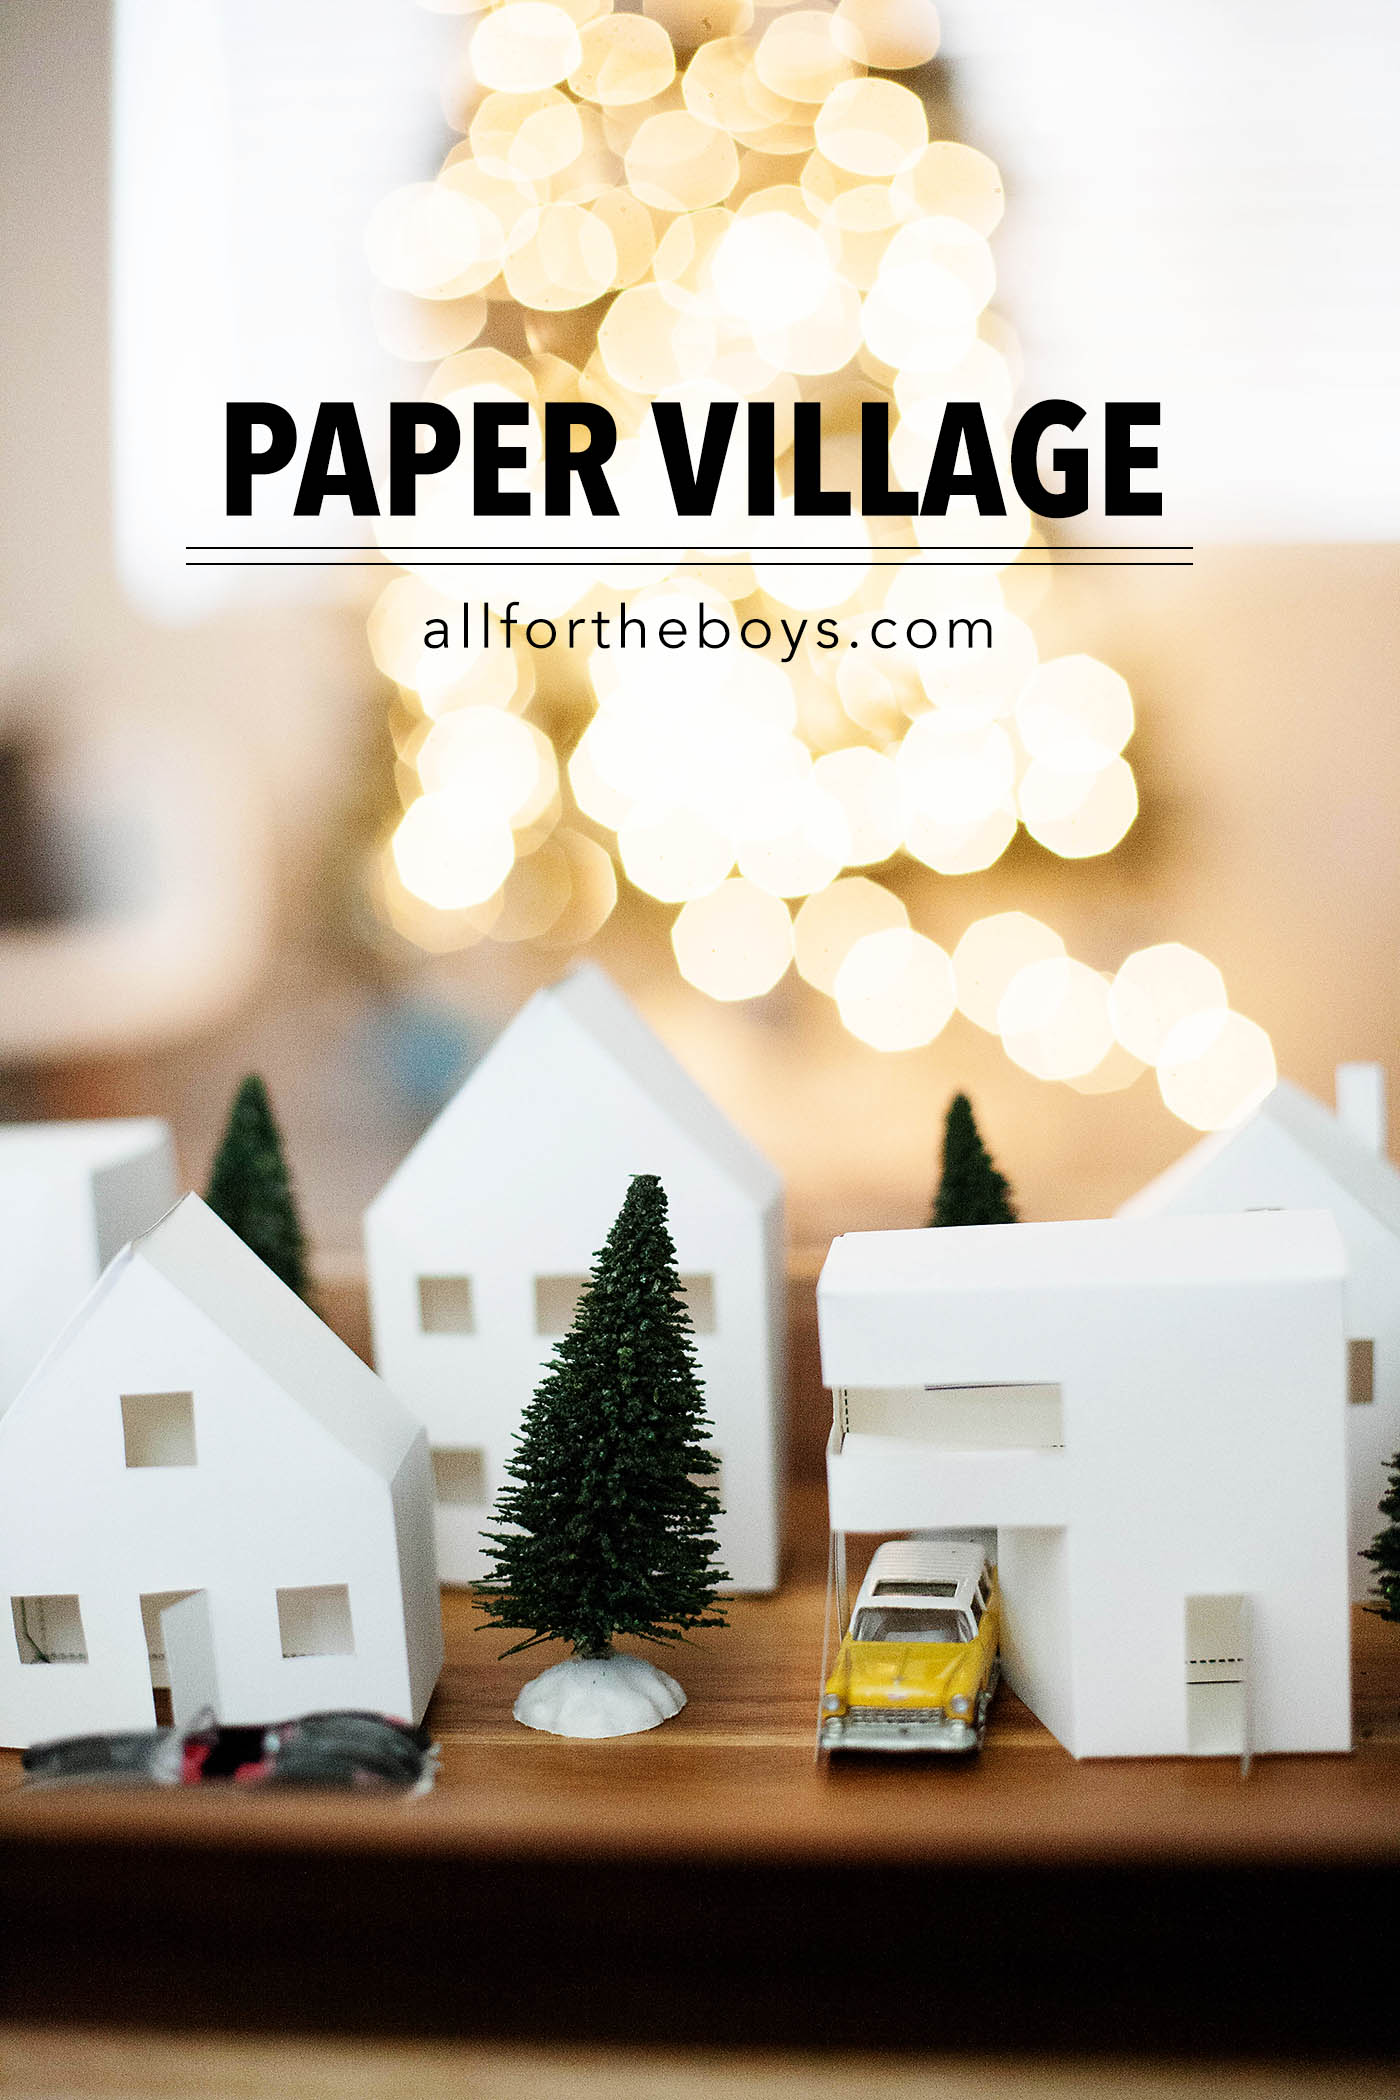 Paper village - links to free printables